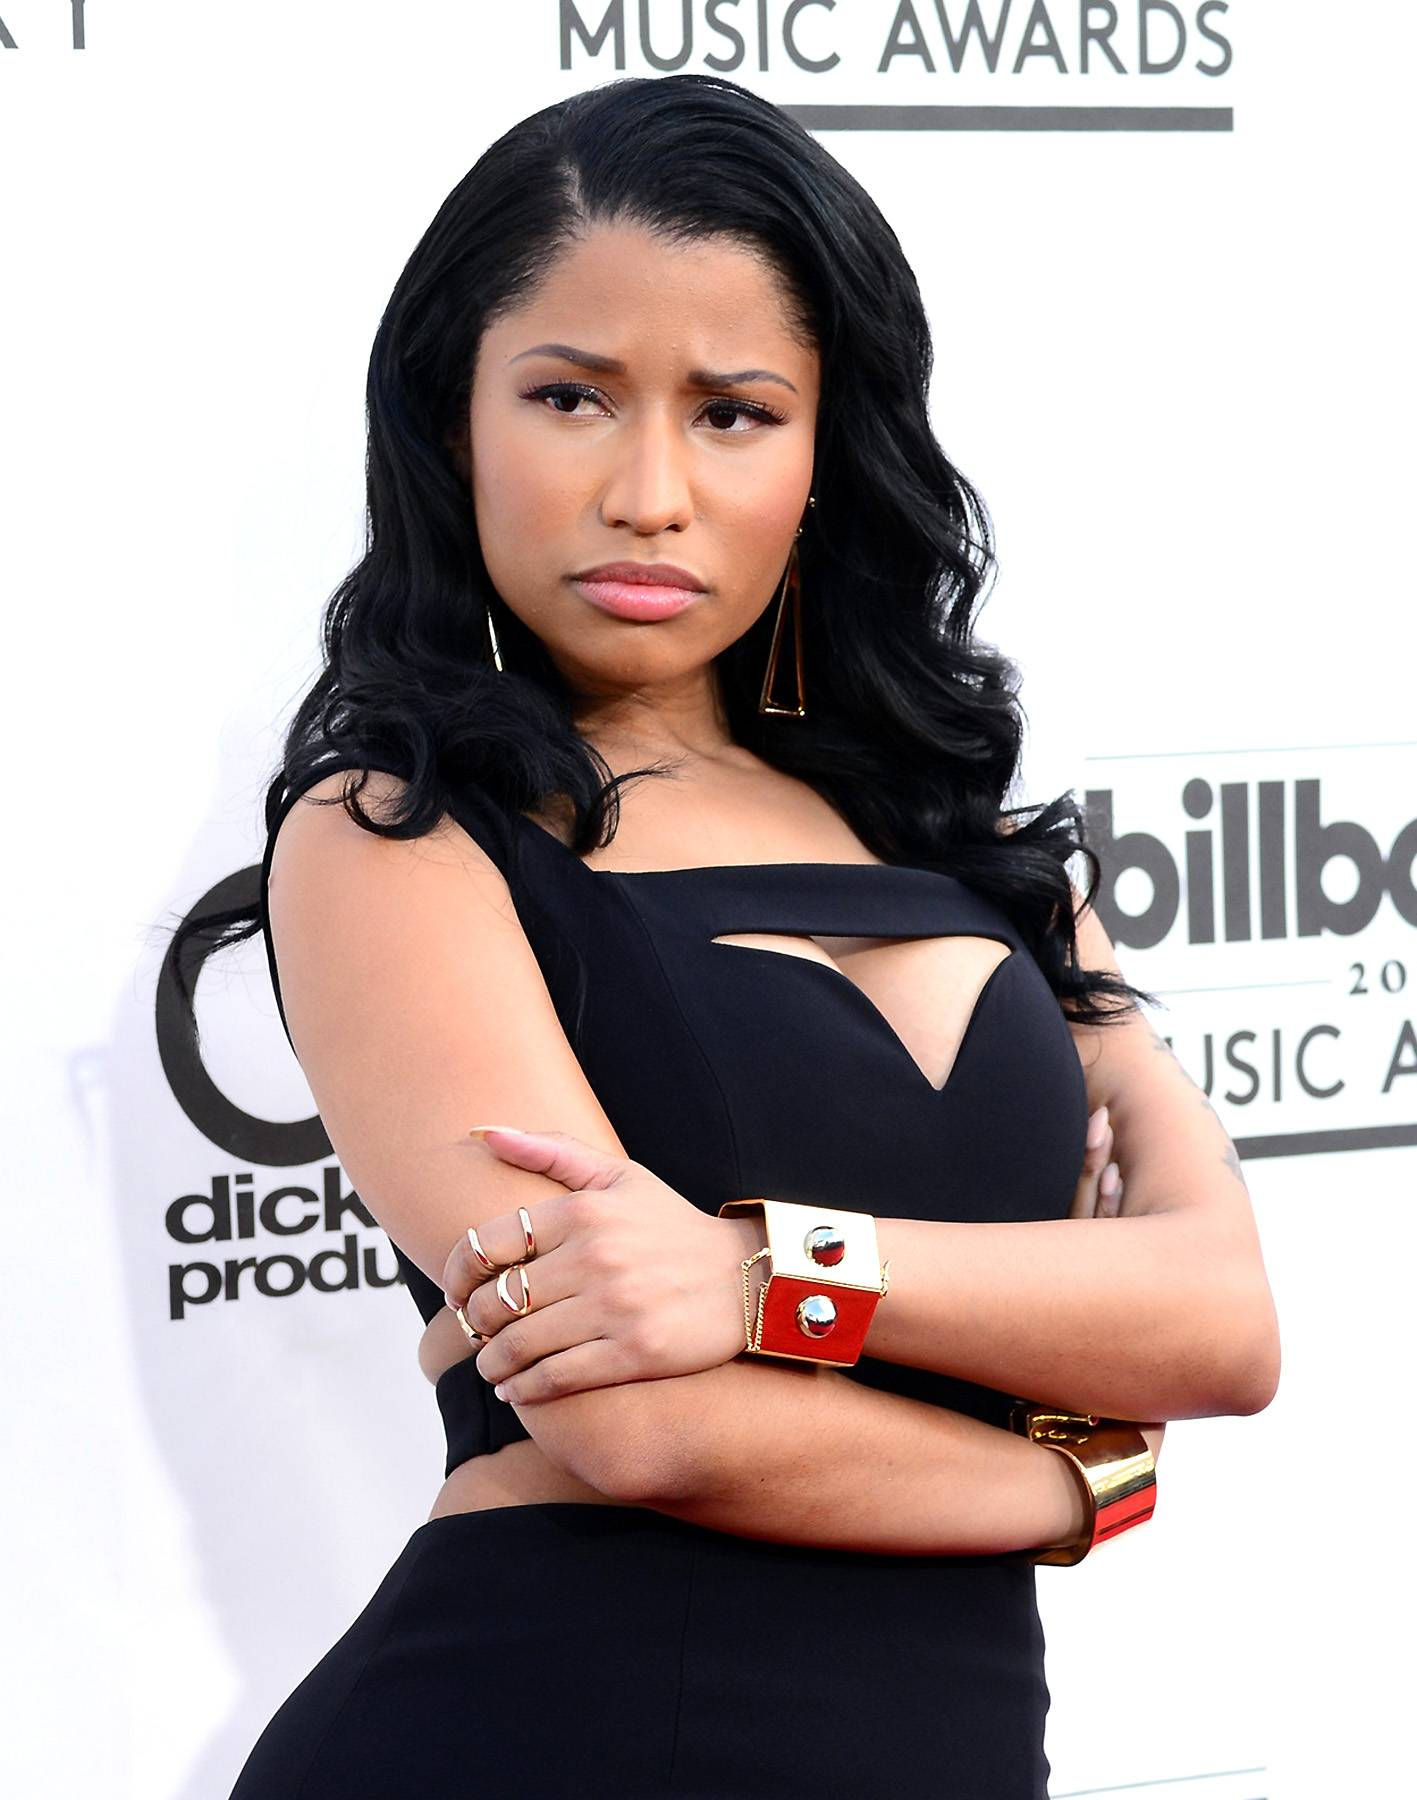 Cake, Cake, Cake - Nicki Minaj has accomplished the unthikable in her short yetexemplary career. She's established herself as one of the greatest MC's of all time and she's not even close to slowing down. In honor of her 33 birthday, lets take a look back at her most controversial moves as an artist. - Intro by George Chapman, Jr.Words by BET Staff(Photo: Frazer Harrison/Getty Images)